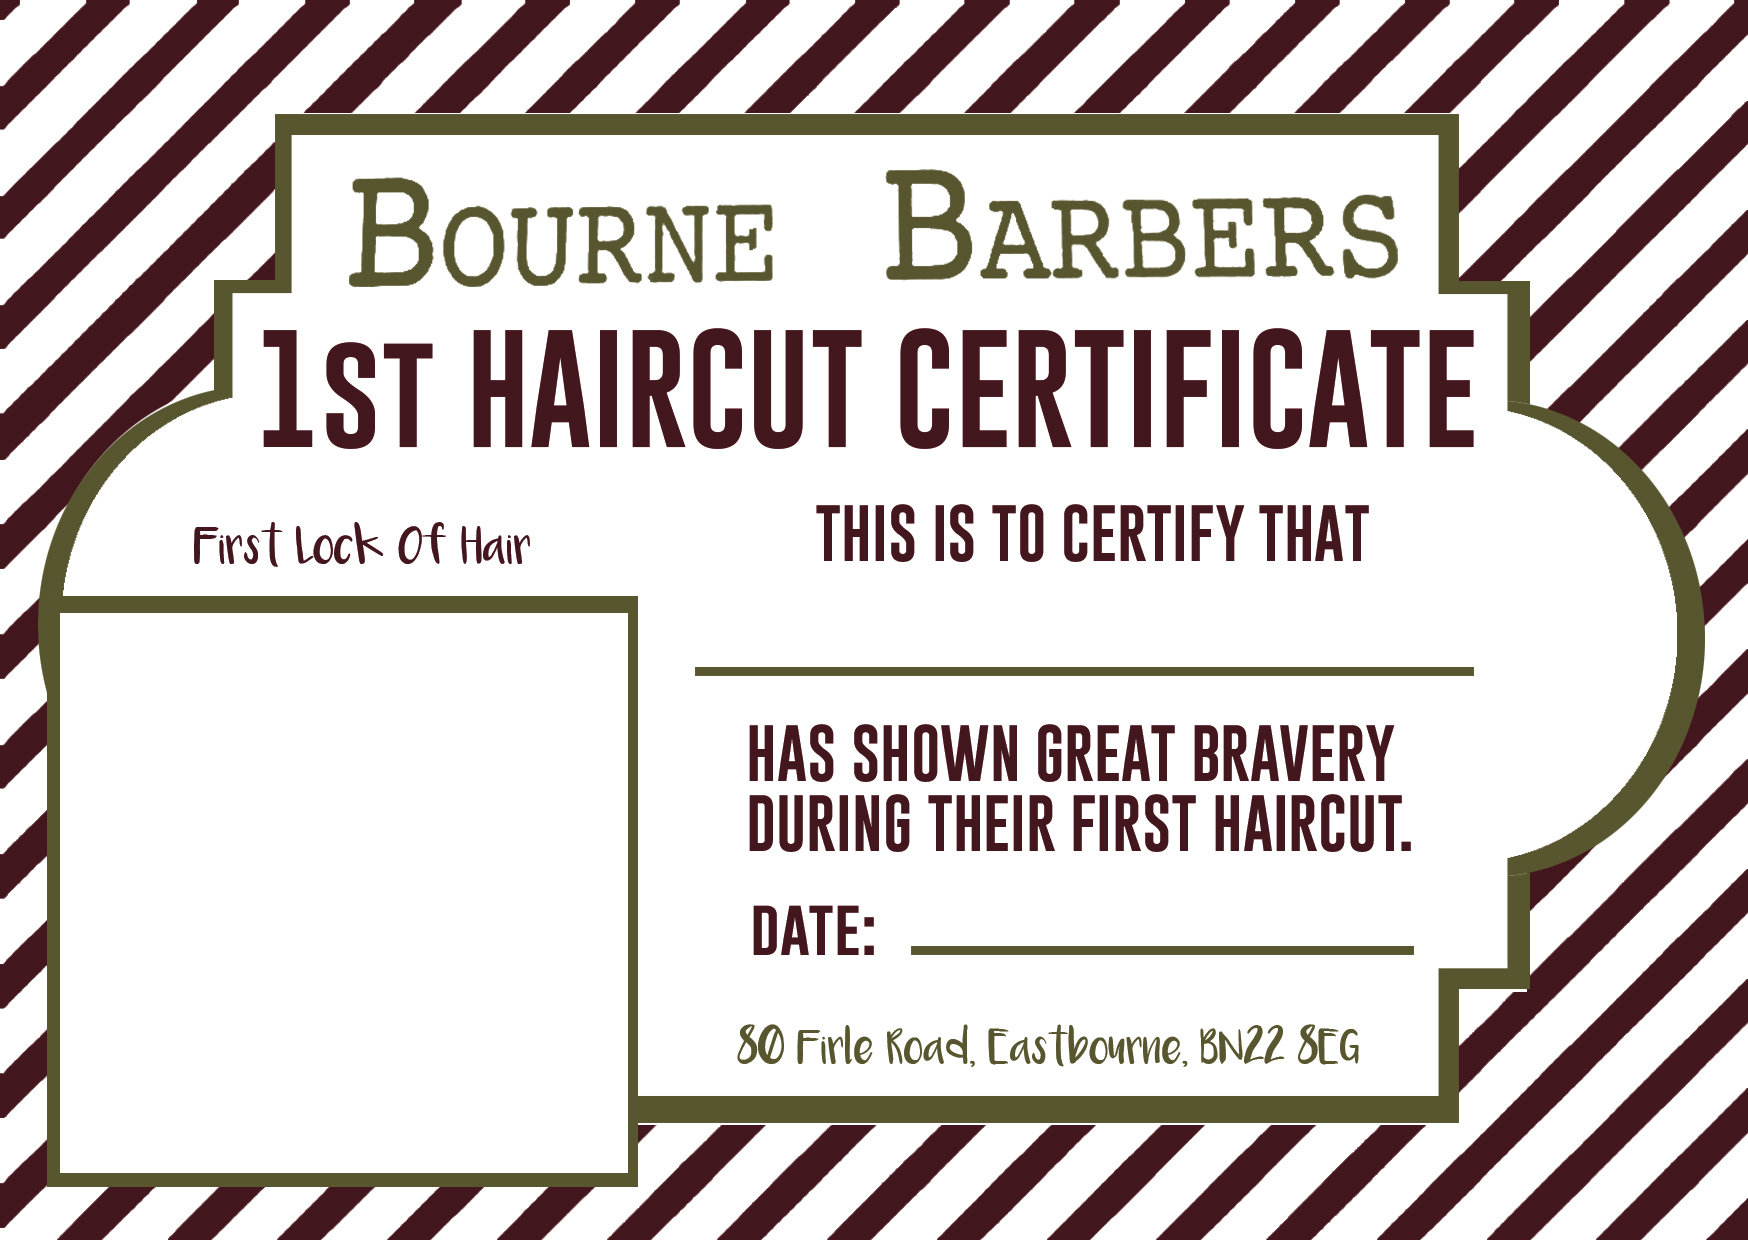 First haircut certificate template gallery haircut ideas for first haircut certificate image collections haircut ideas for my first haircut certificate template create a wanted xflitez Gallery